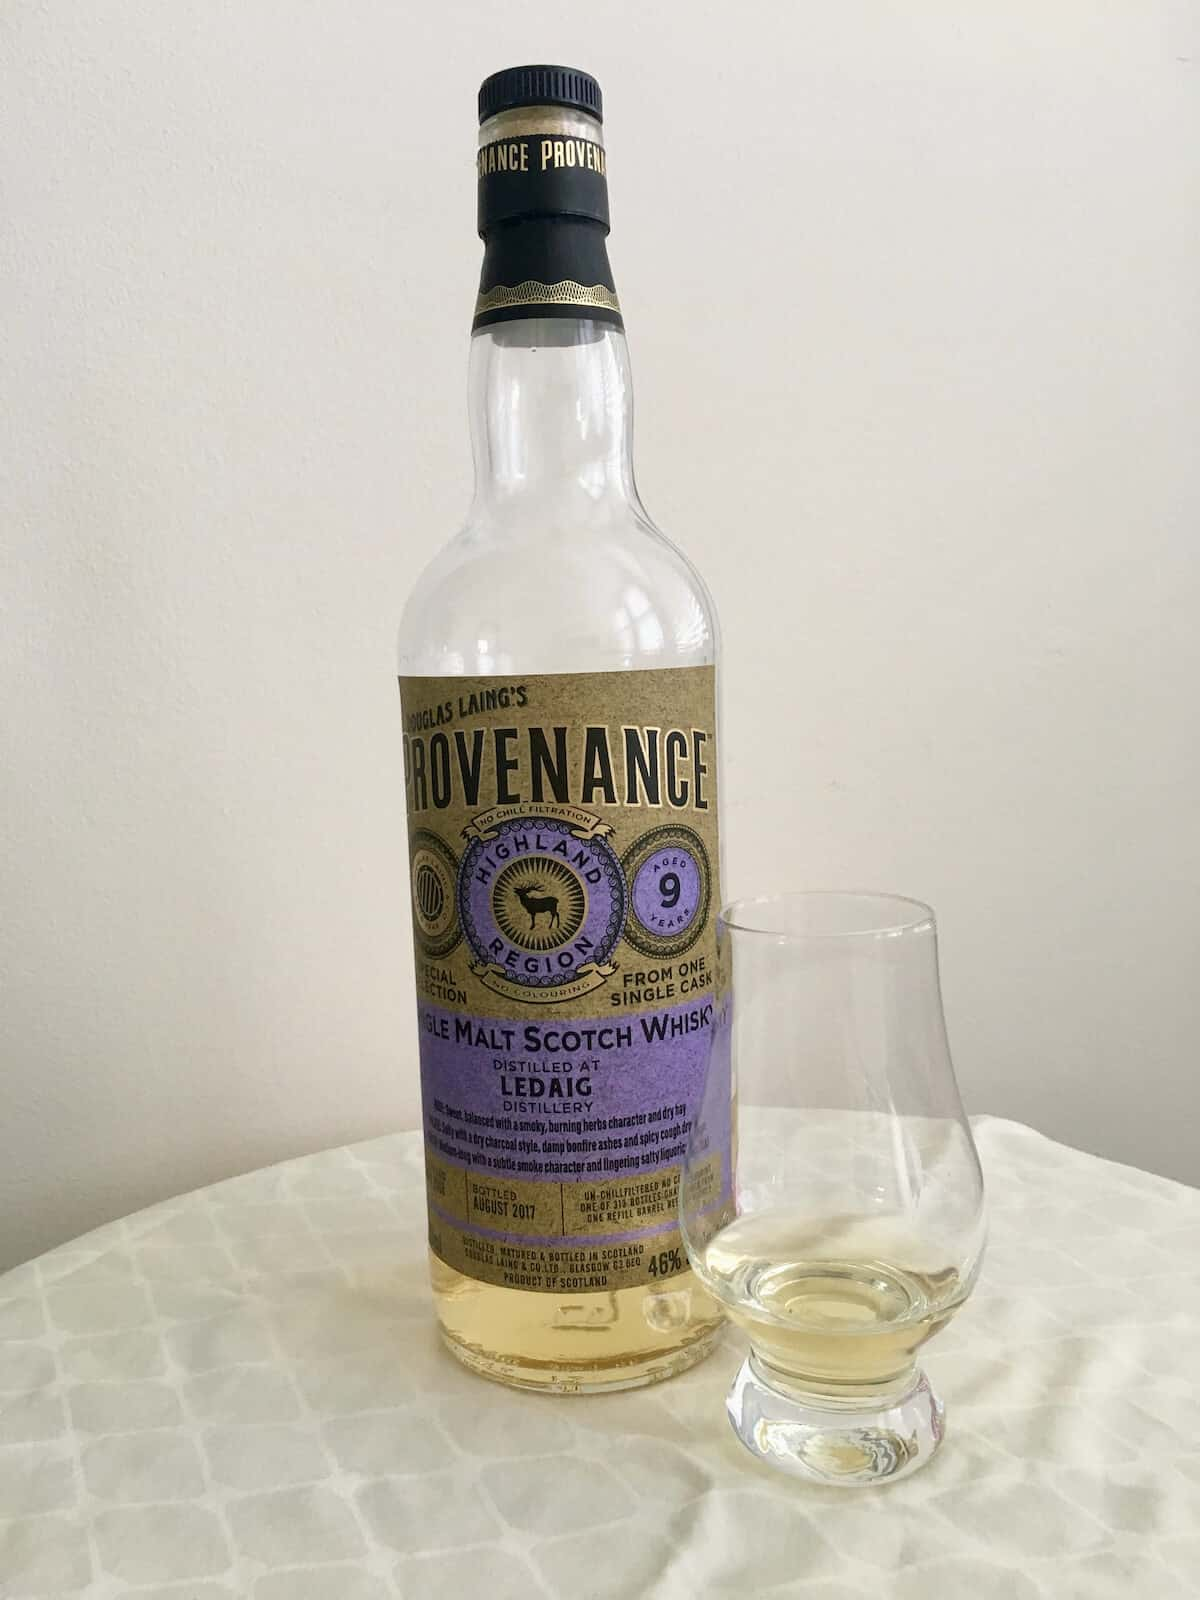 Douglas Laing Provenance in bottle and poured in a glass on a table.